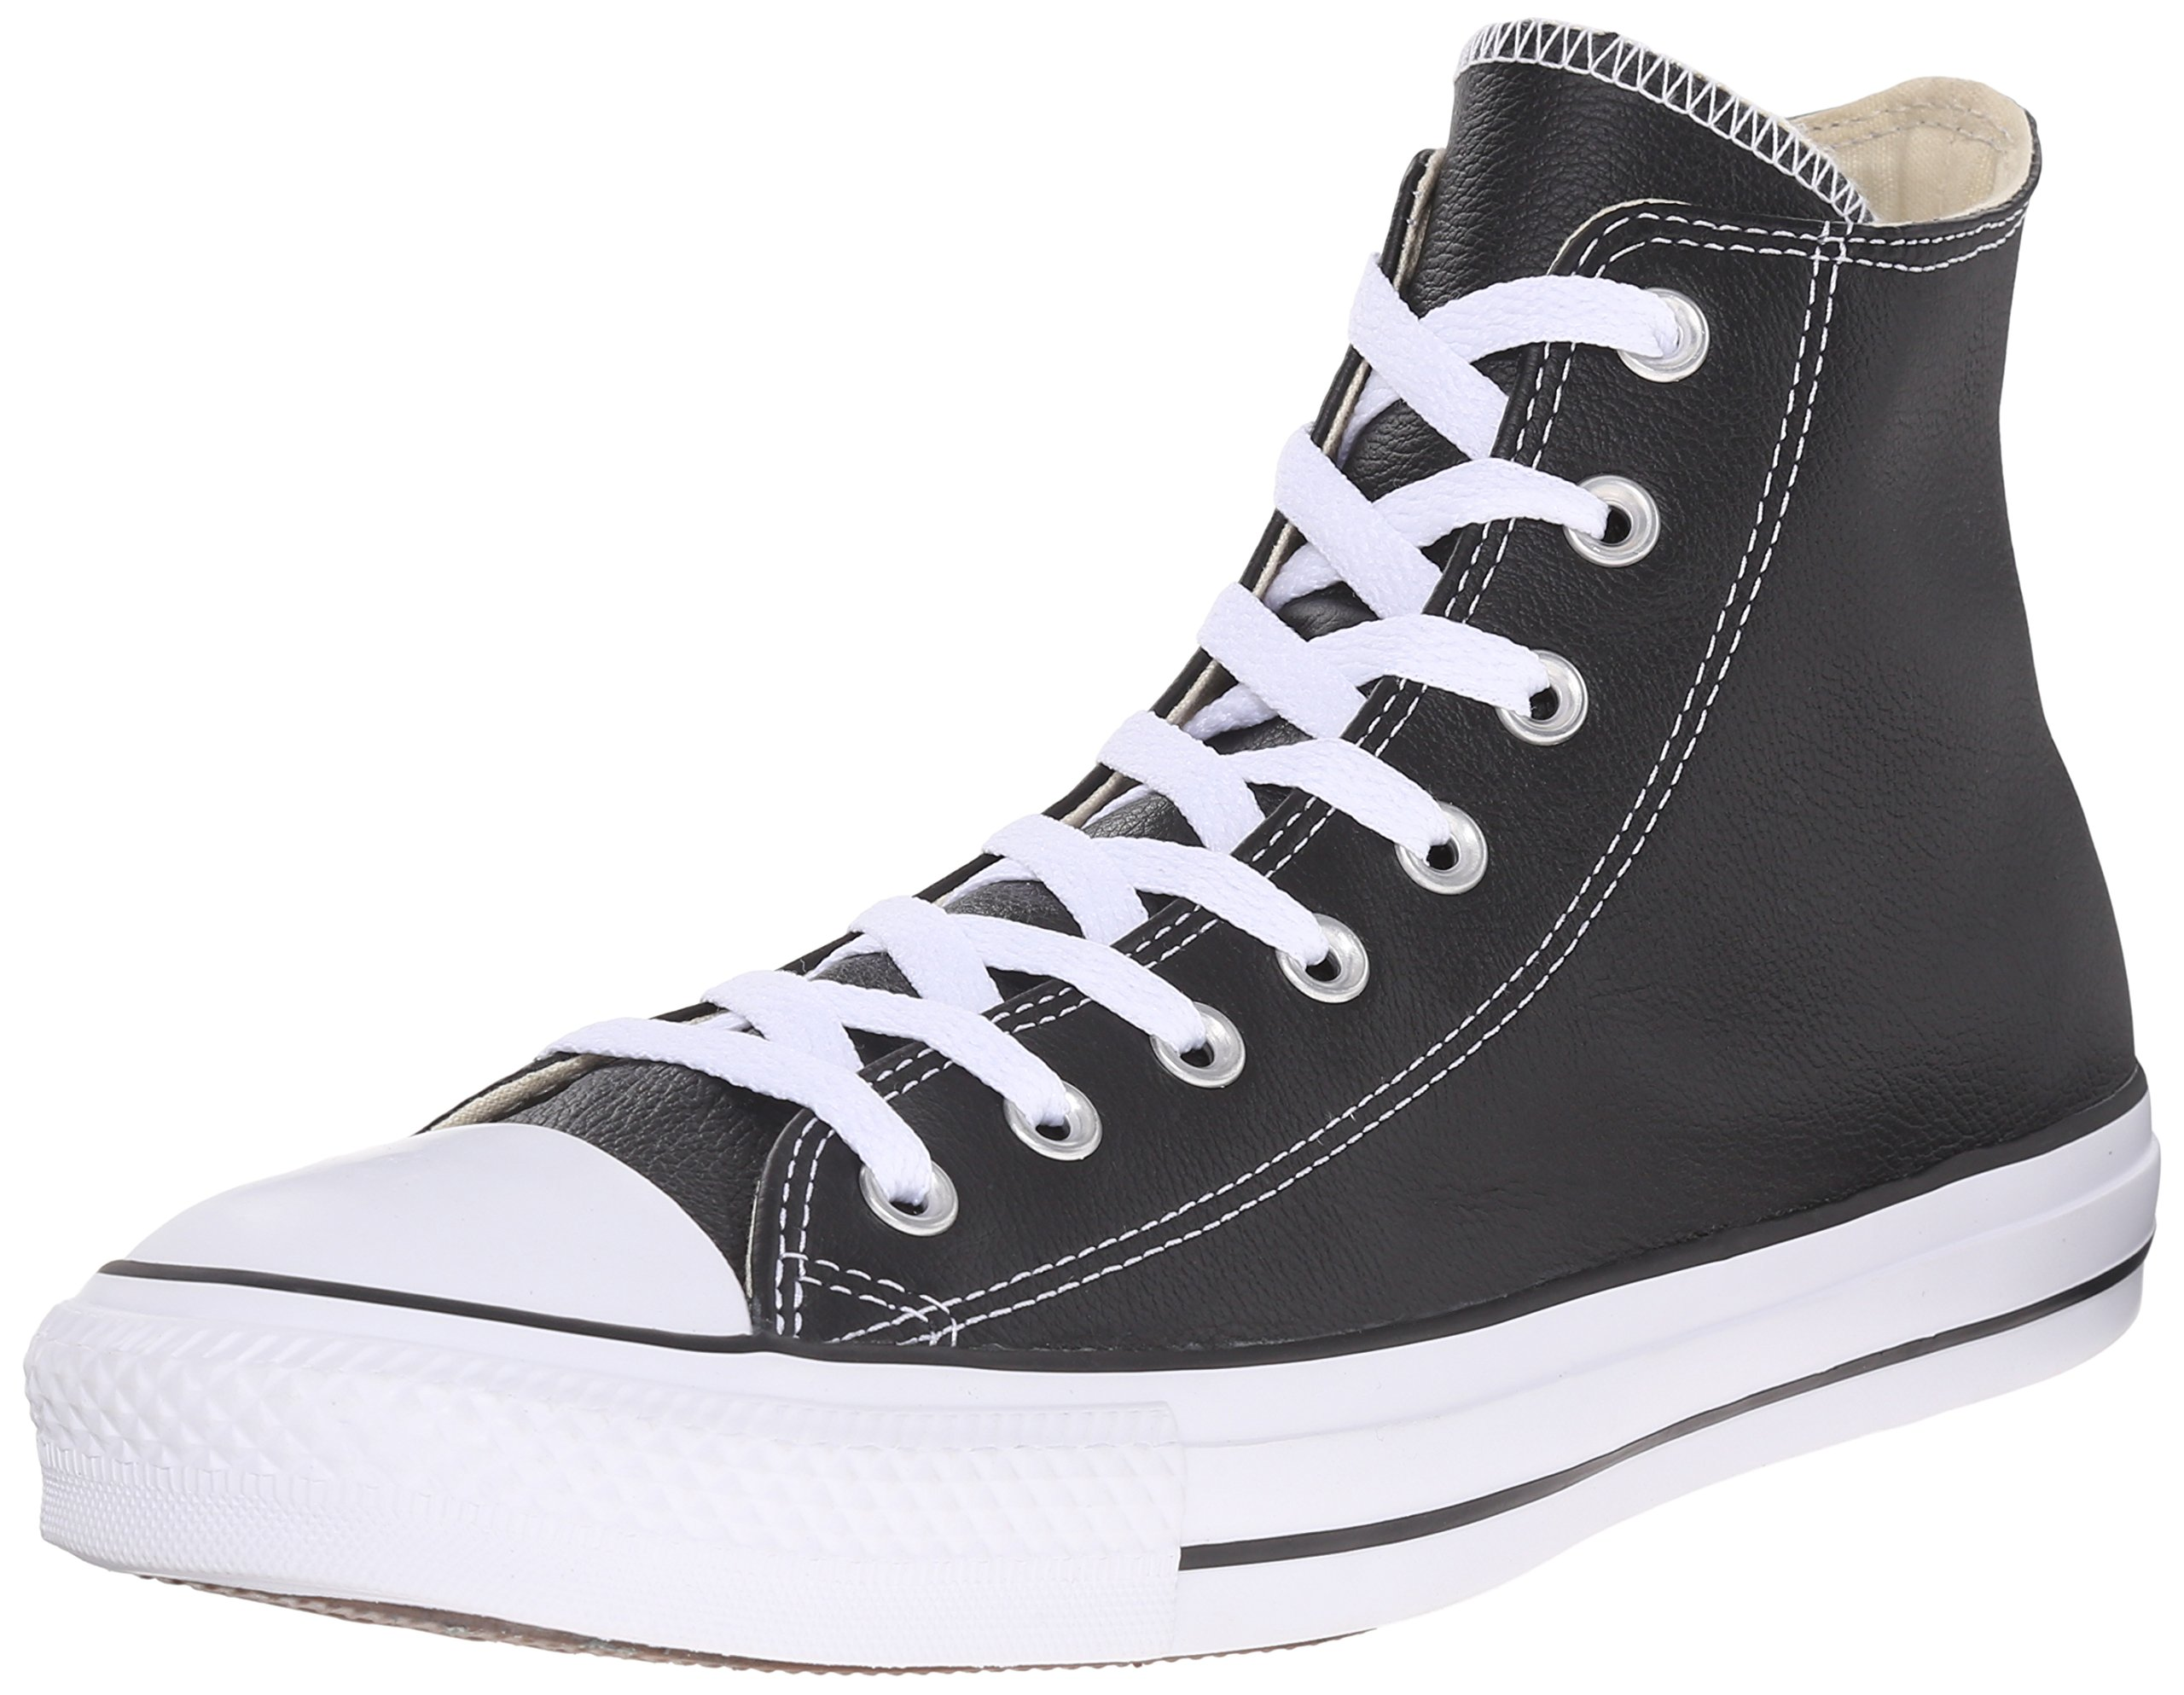 Converse Unisex Chuck Taylor All Star Leather High Top Shoe Black 10.5 M US